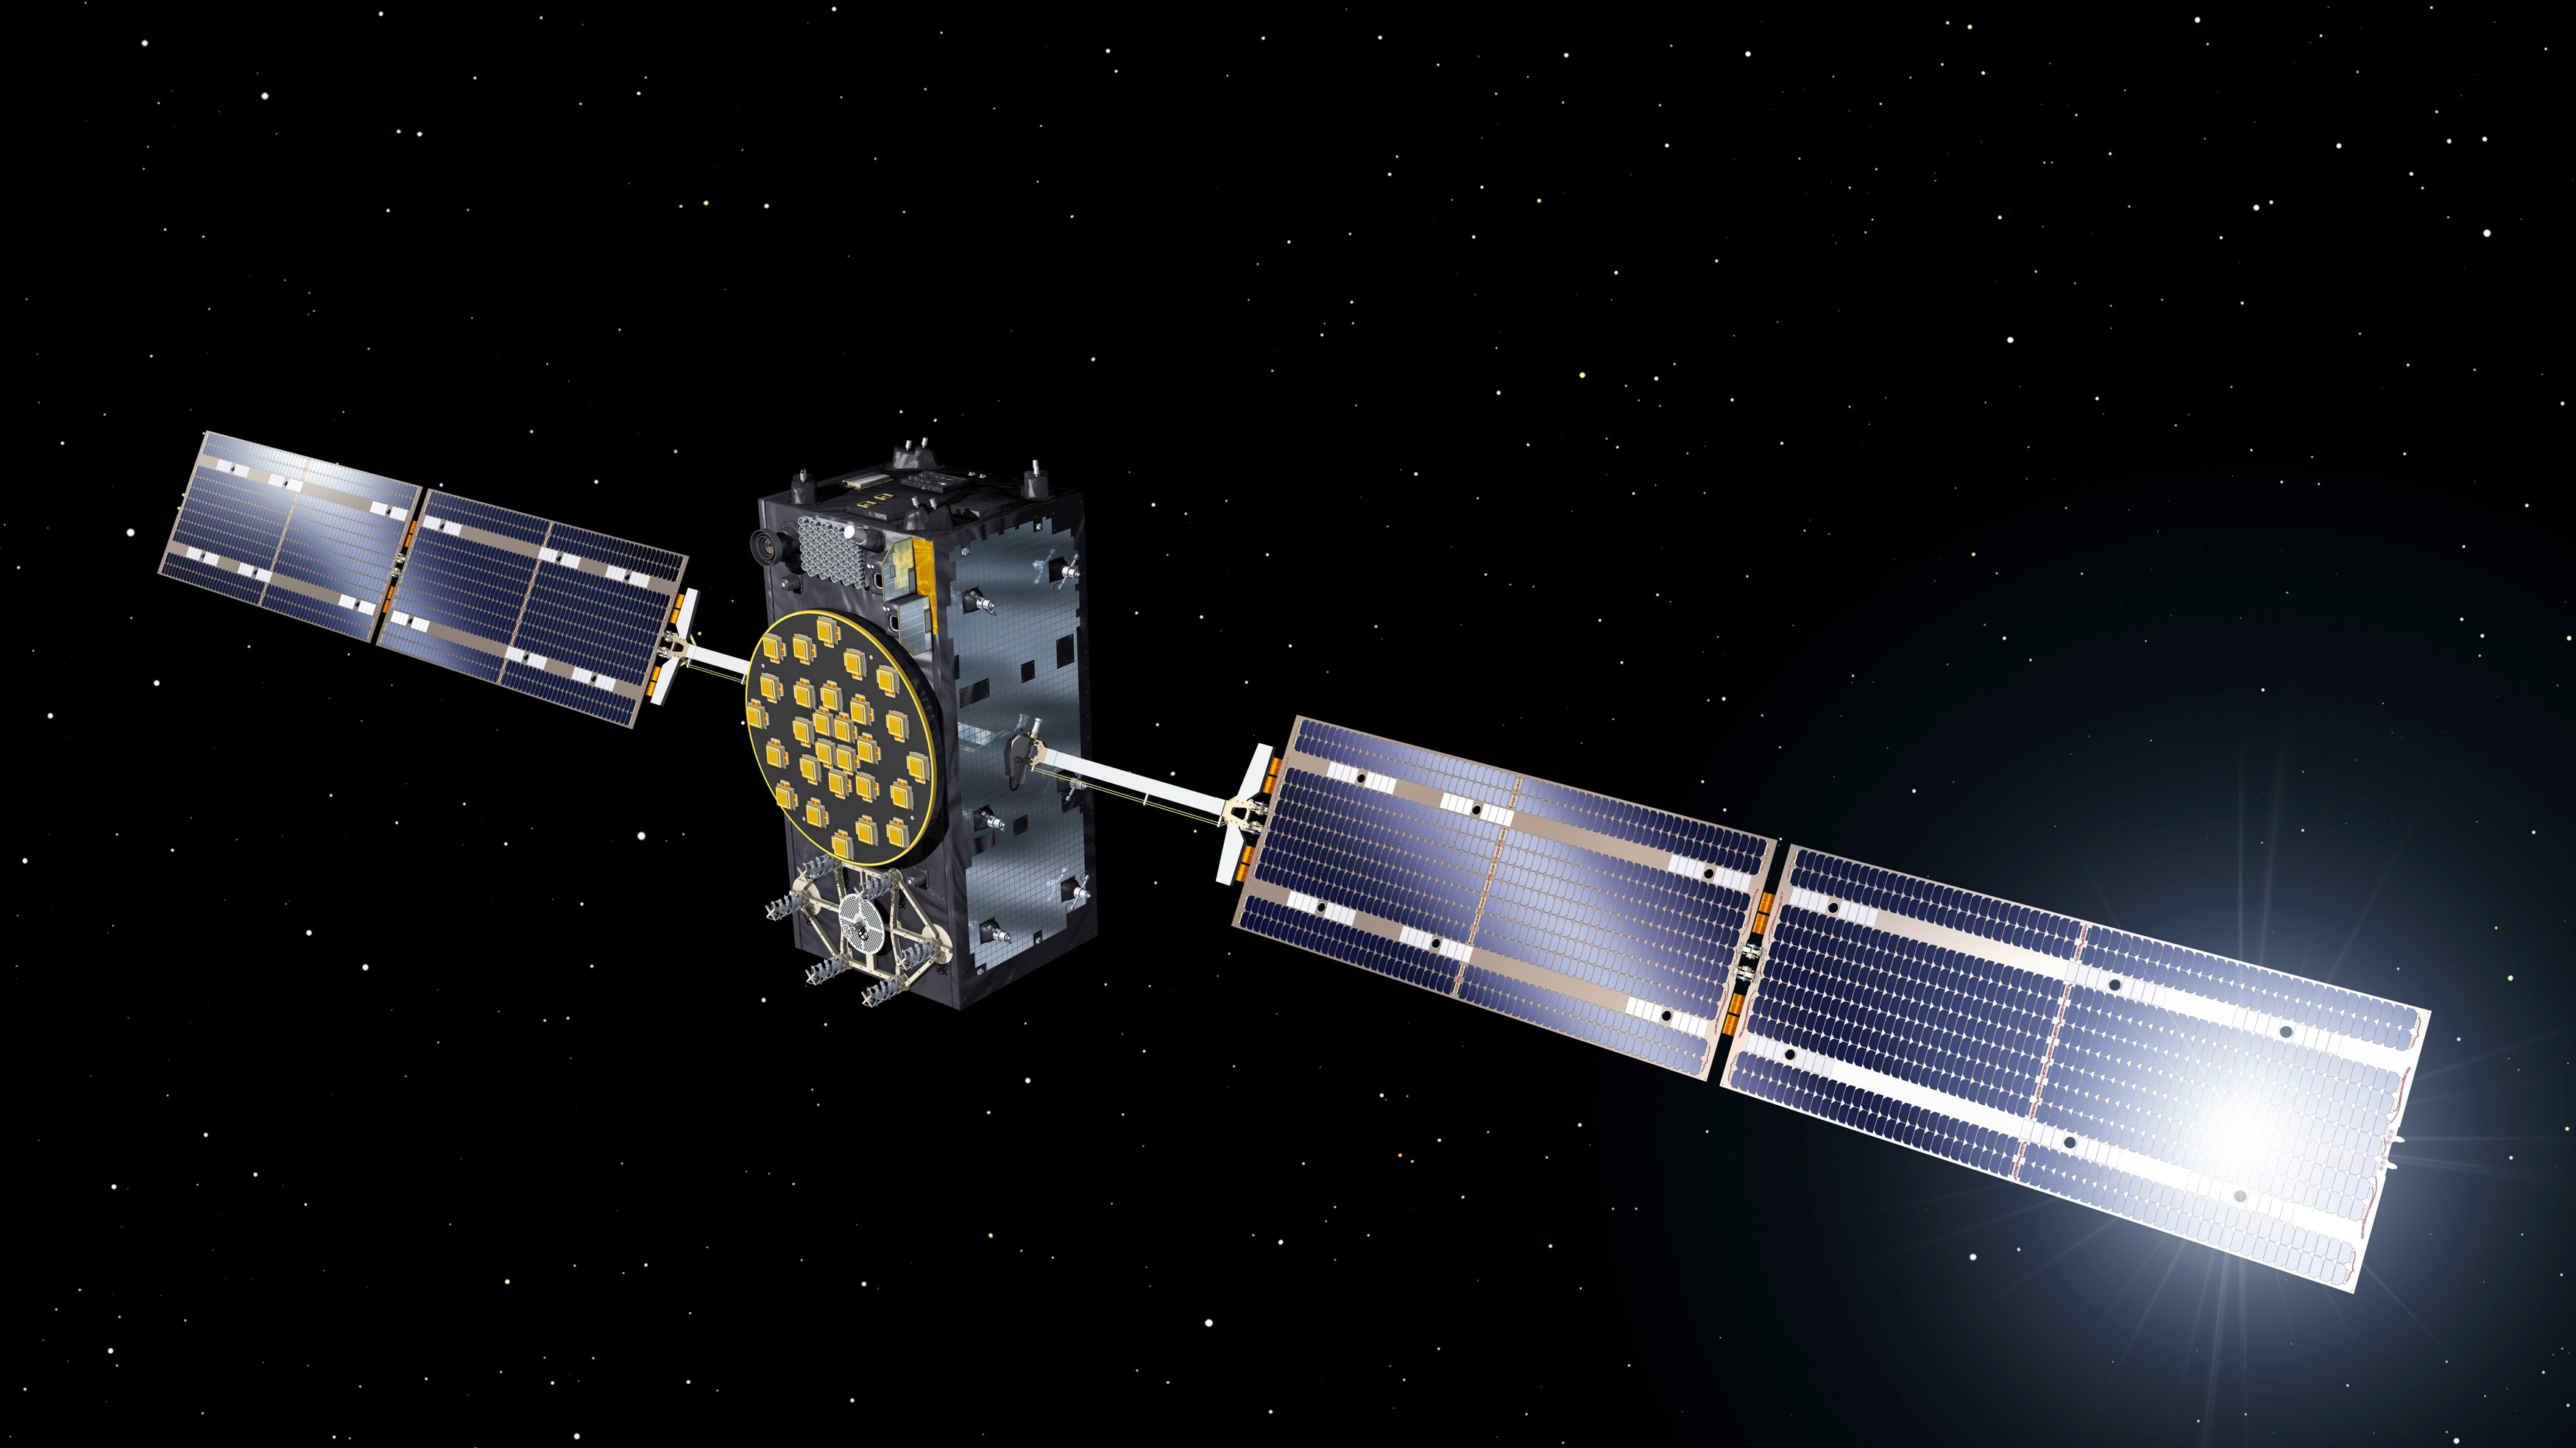 It's Hard Out There for a Wayward Navigation Satellite